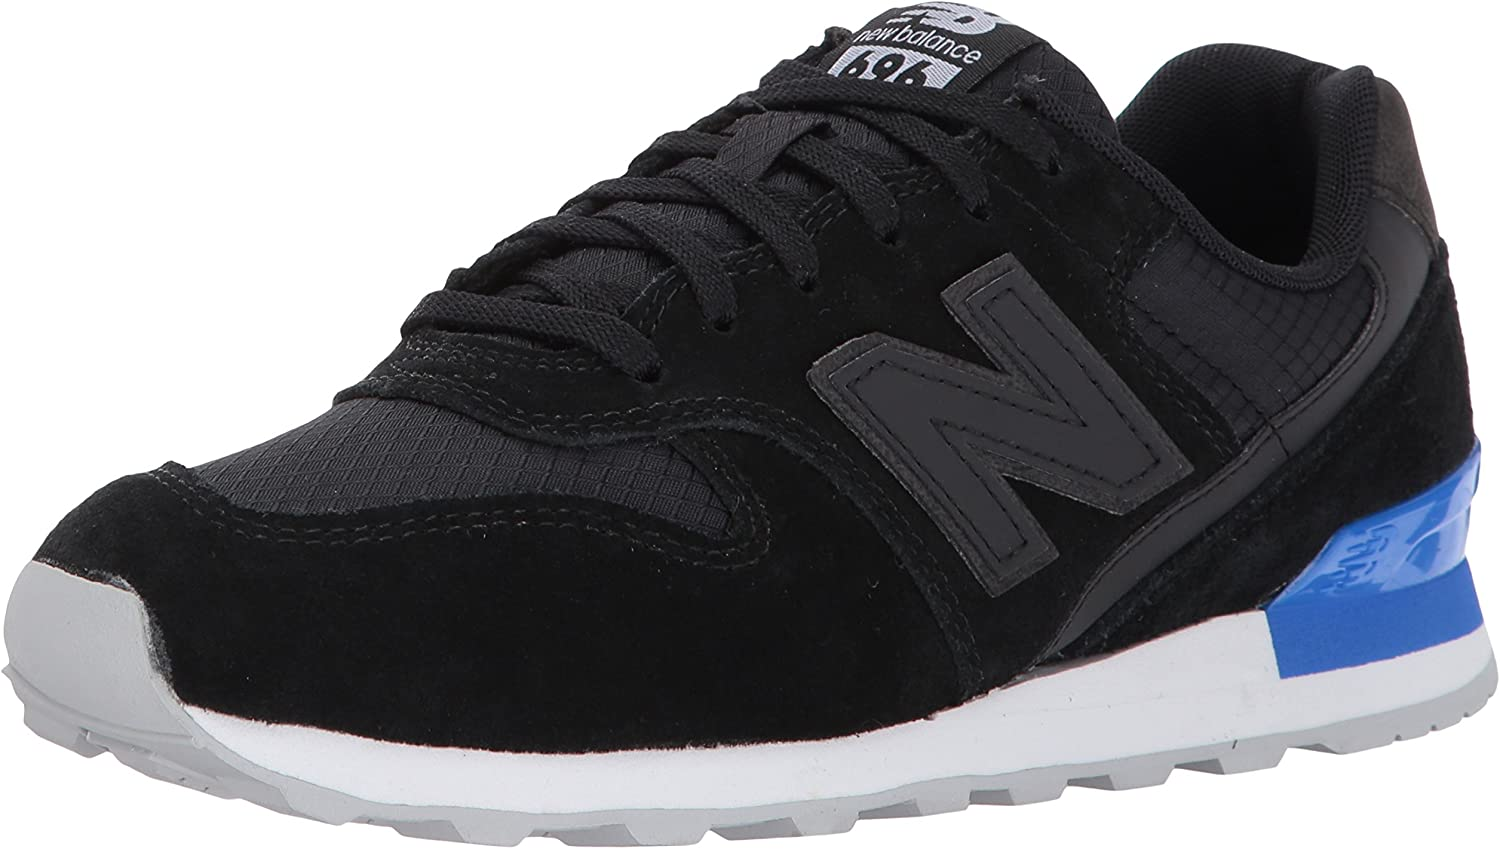 New Balance Women's 696v1 Sneakers